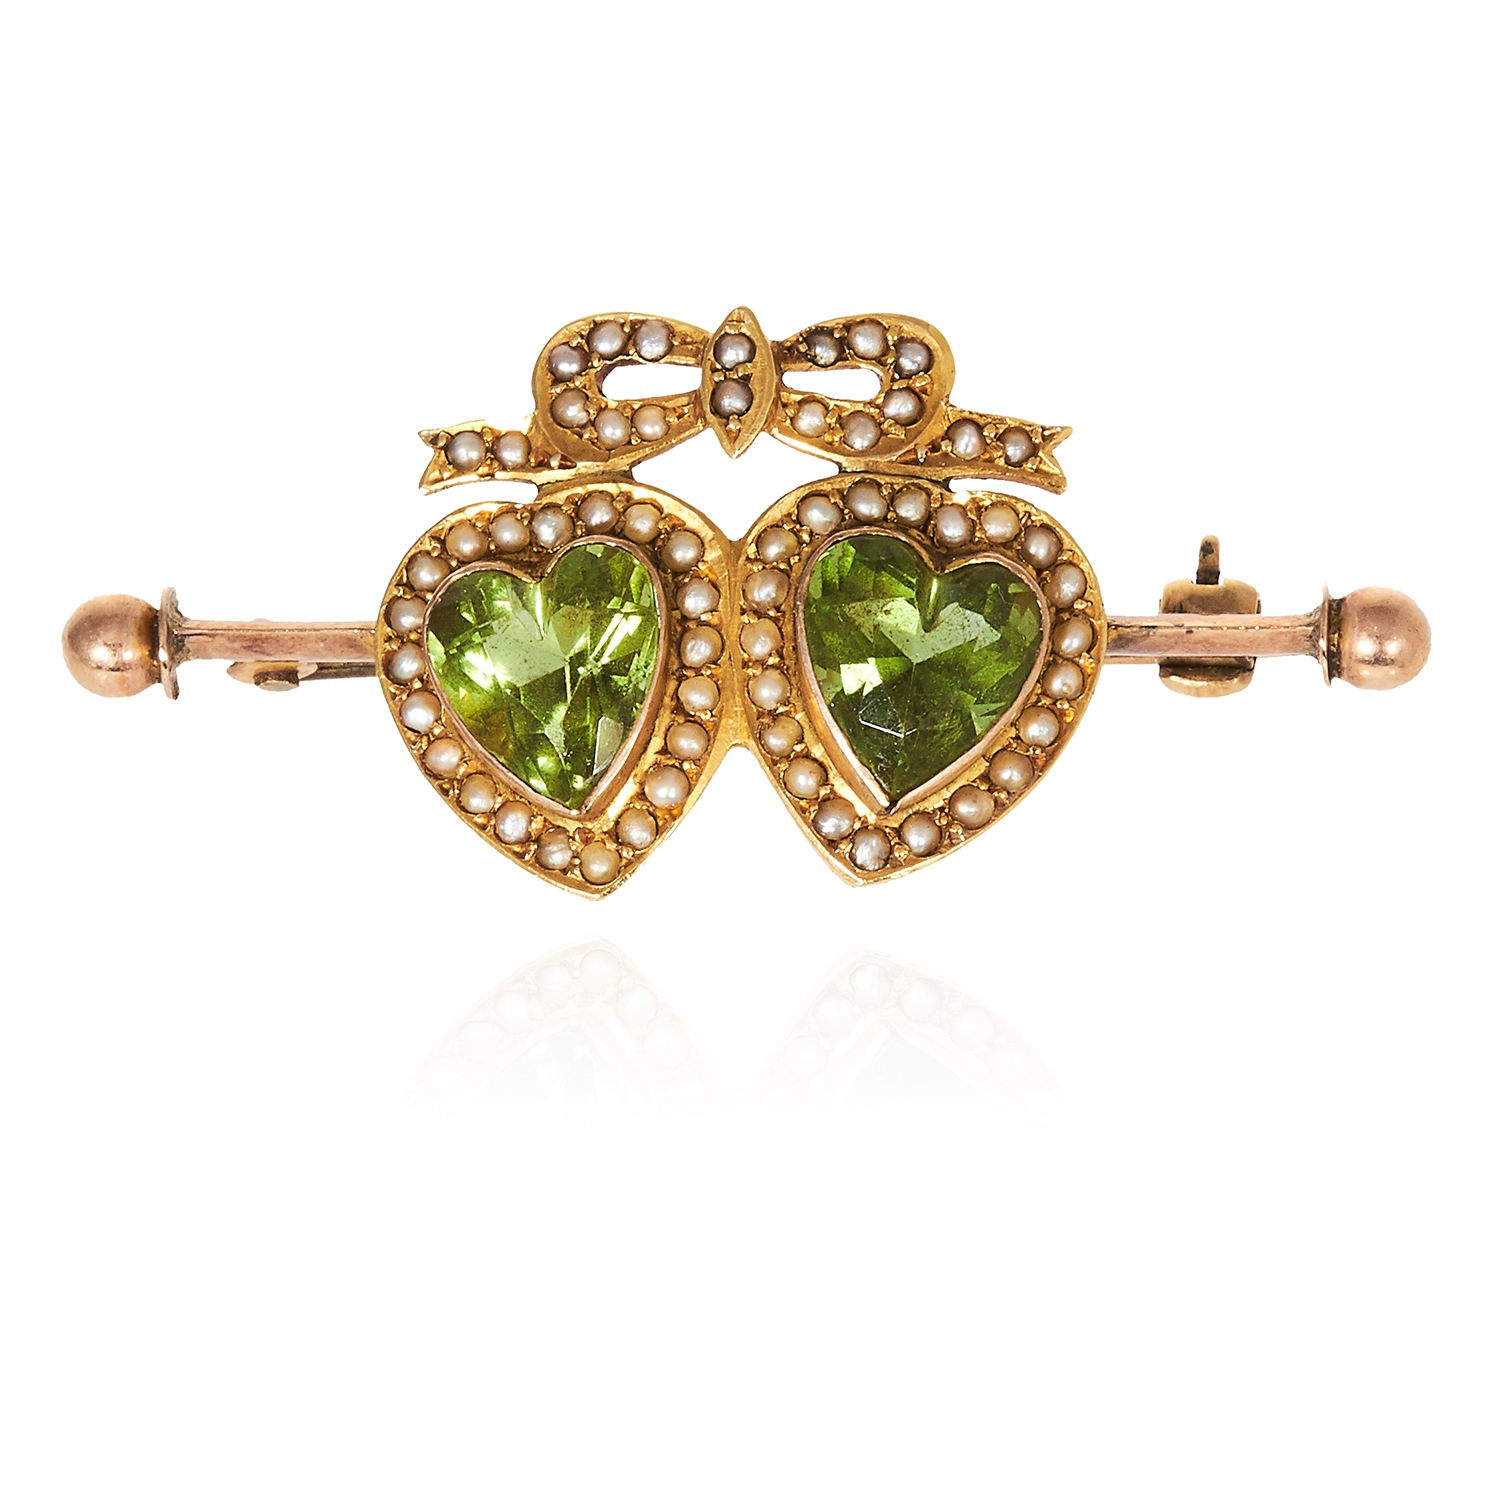 Los 38 - AN ANTIQUE PEARL AND PERIDOT SWEETHEART BROOCH in yellow gold, with ribbon and bow motif jewelled